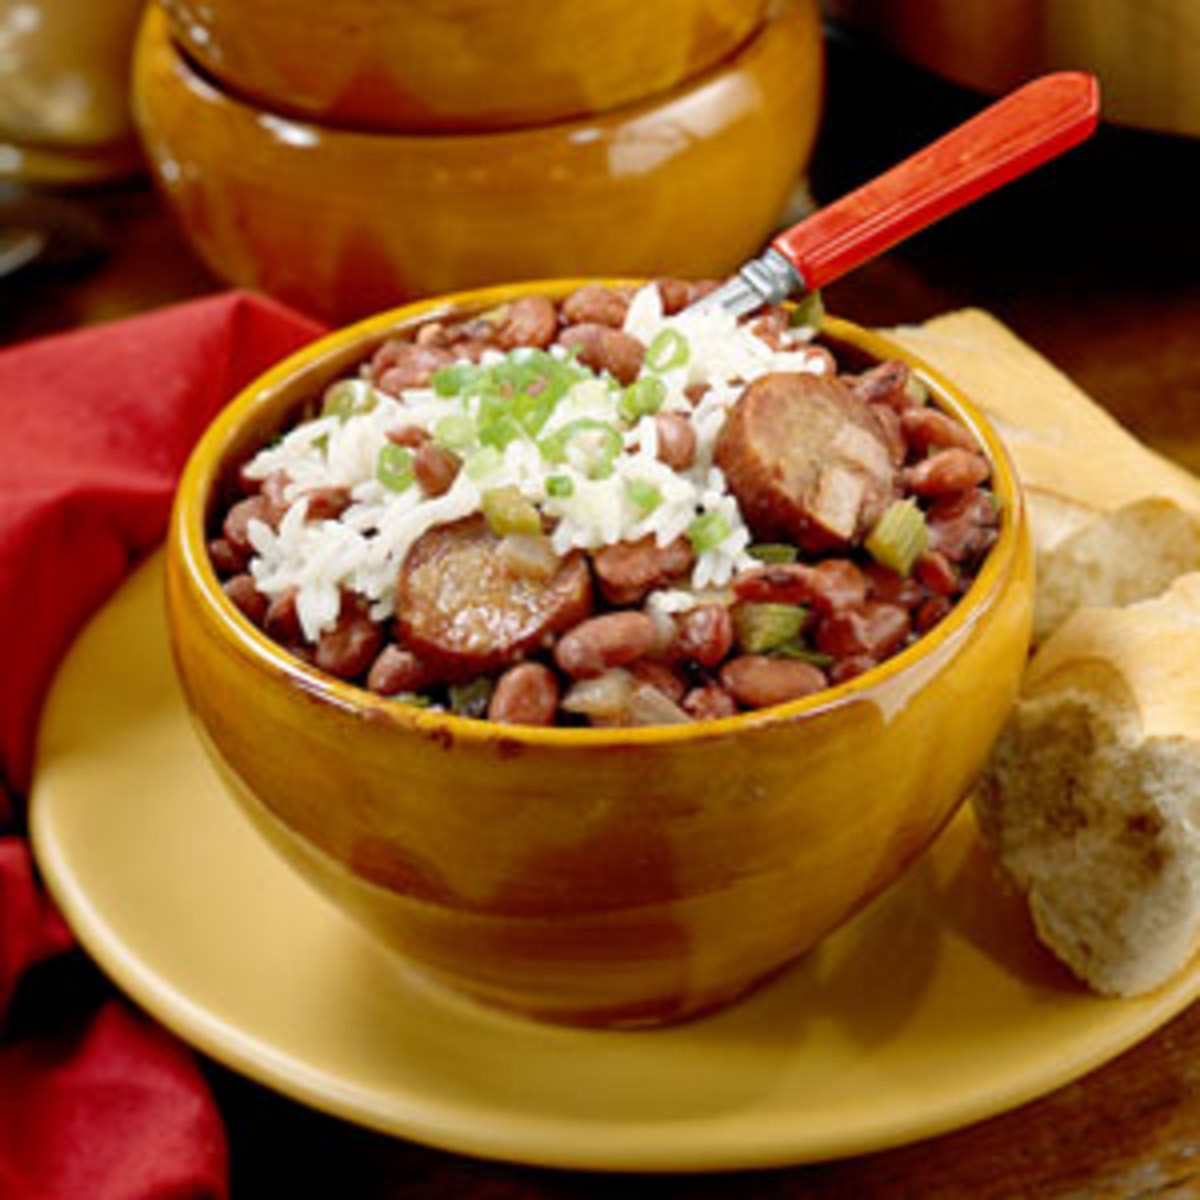 Have you ever had red beans and rice. Have you ever cooked a kettle of beans. Post your comments below.